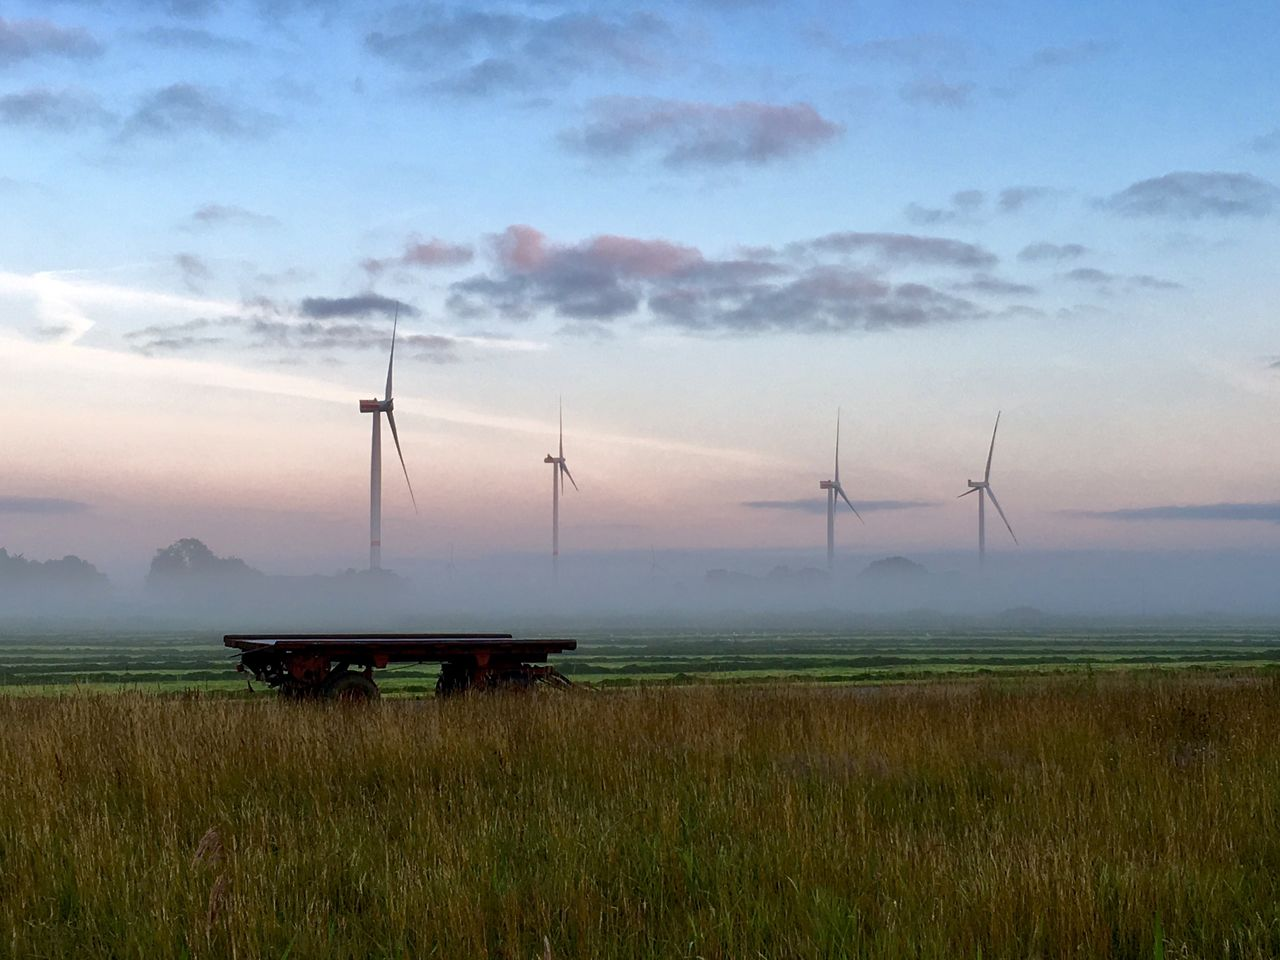 sky, cloud - sky, field, environment, turbine, wind turbine, land, fuel and power generation, grass, beauty in nature, scenics - nature, environmental conservation, renewable energy, nature, wind power, alternative energy, landscape, rural scene, no people, built structure